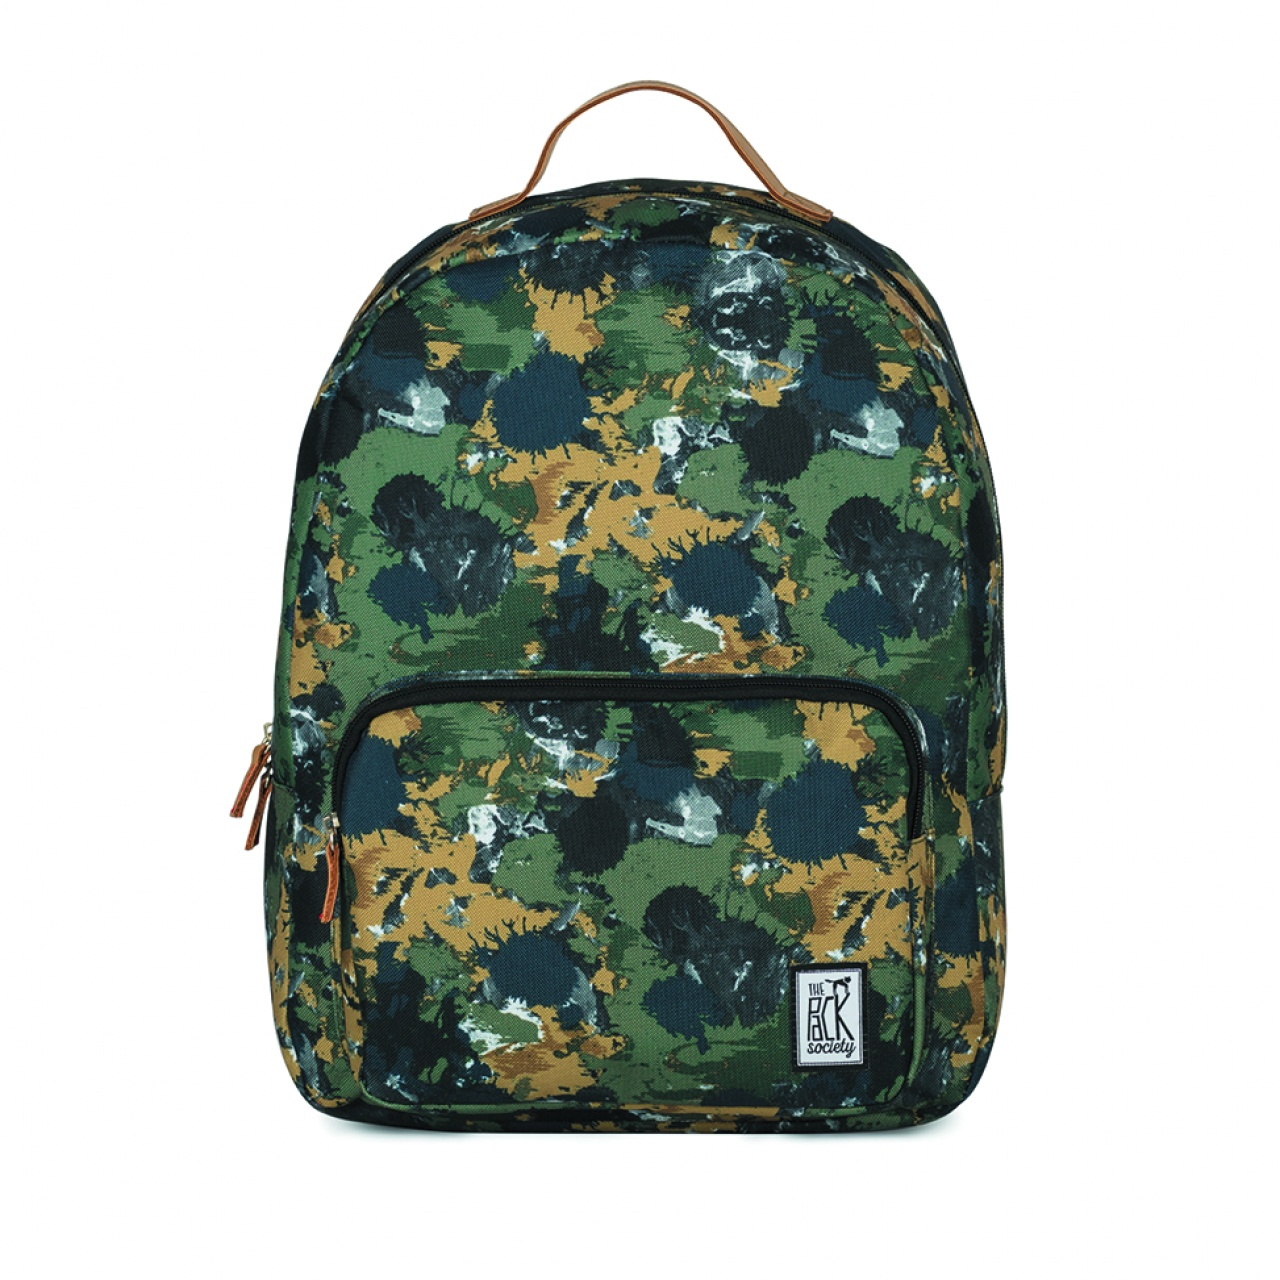 Rucsac clasic The Pack Society Green Camo